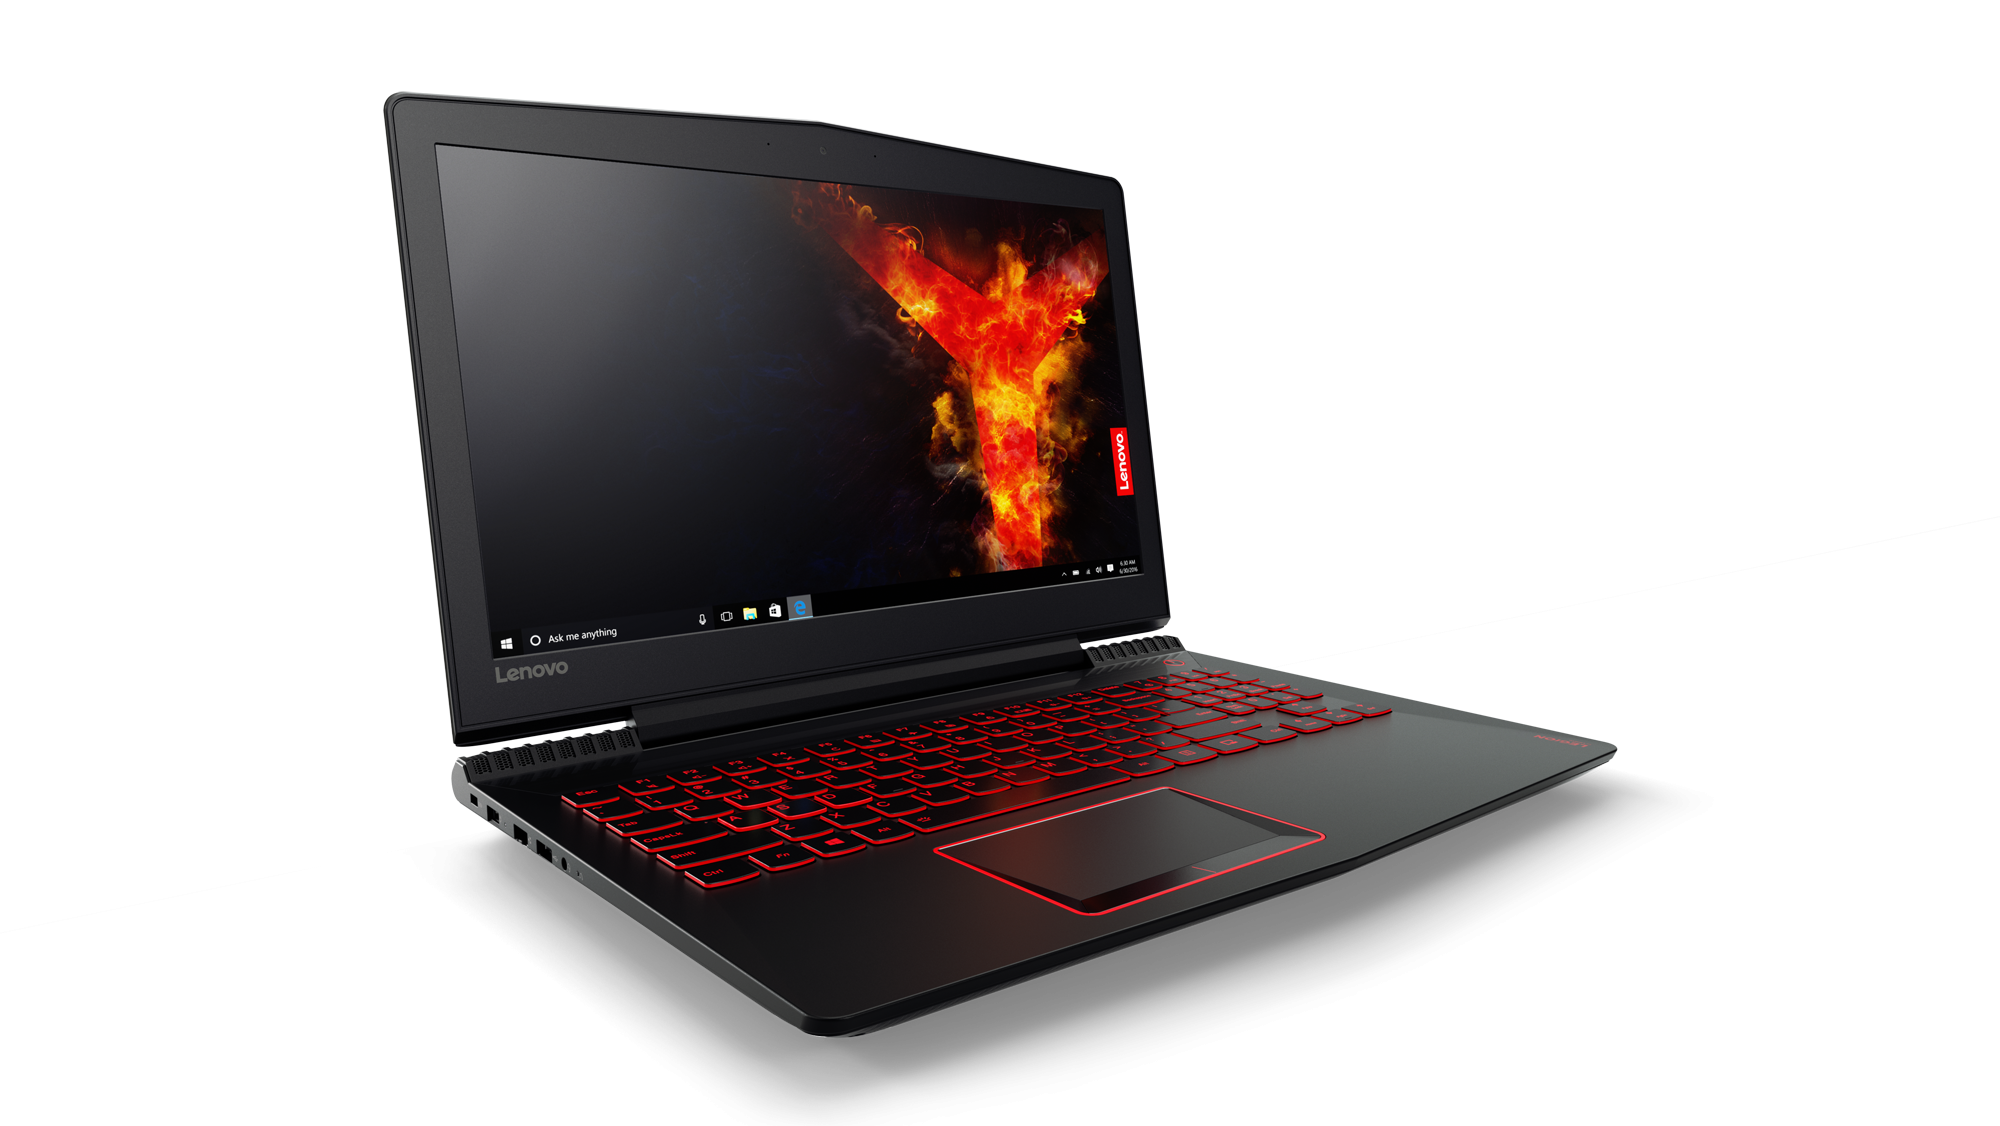 "Lenovo Legion Y520 i7-7700HQ 3,80GHz/16GB/128GB SSD+1TB HDD/15,6"" FHD/IPS/AG/GeForce 6GB/WIN10 80YY000ACK"